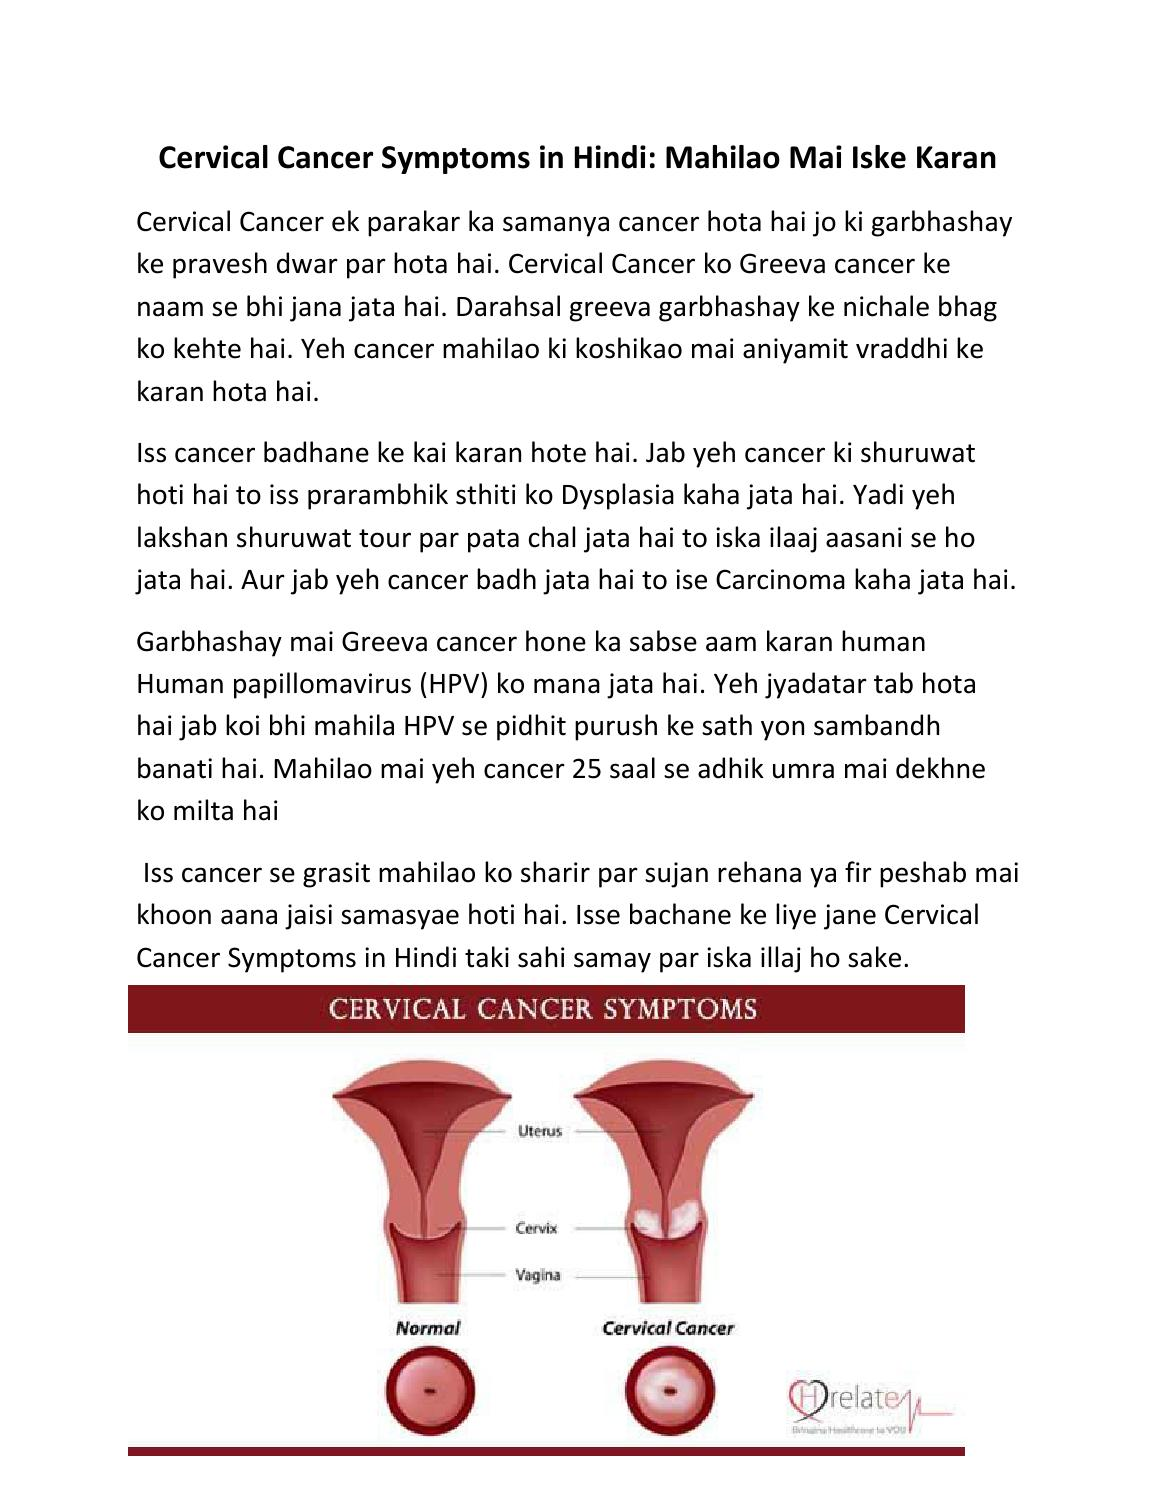 Cervical Treatment In Hindi, Foracort price foracort neohaler